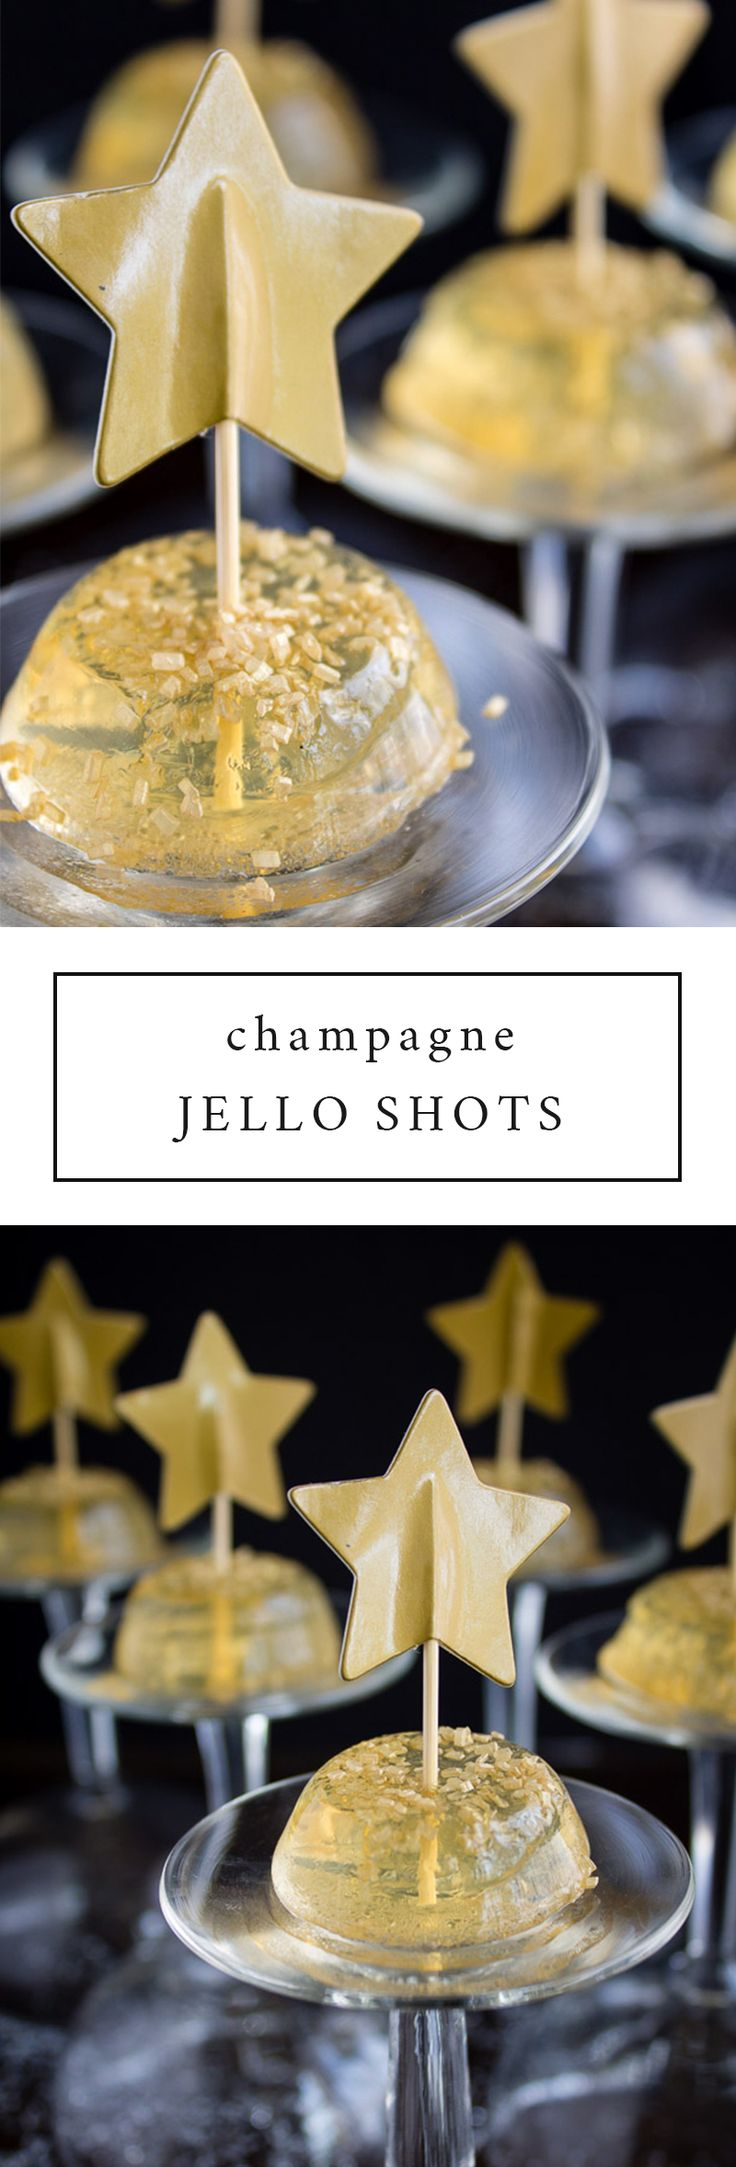 These champagne jello shots are absolutely perfect for New Years Eve or in place of your New Years Even drinks. Bottoms up!